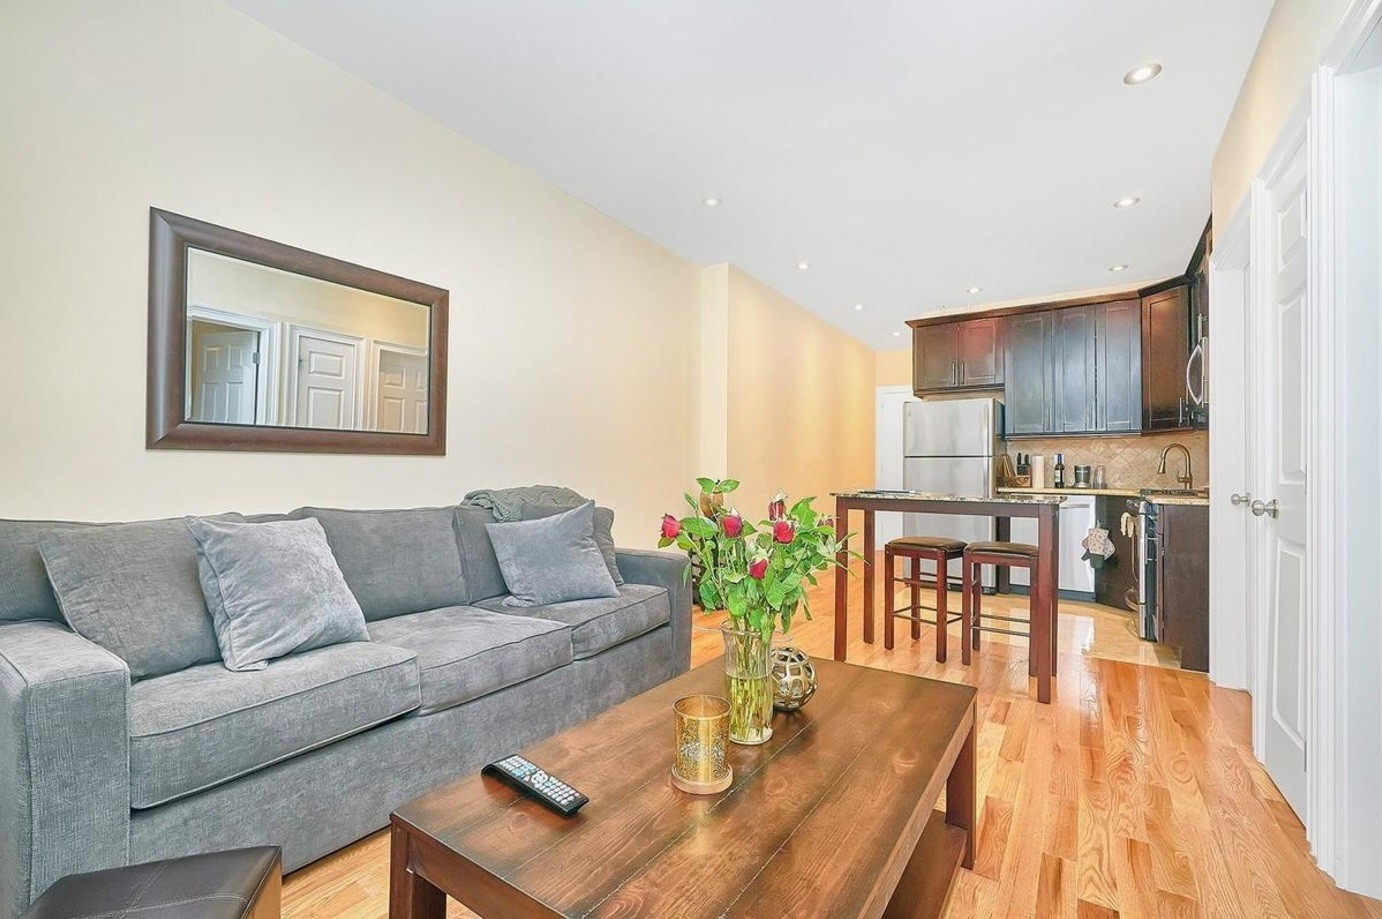 WASHINGTON HEIGHTS, MANHATTAN: A Recently Renovated Two Bedroom Apartment  With A Large Living Room, Stainless Steel Kitchen Appliances And A  Brand New ...